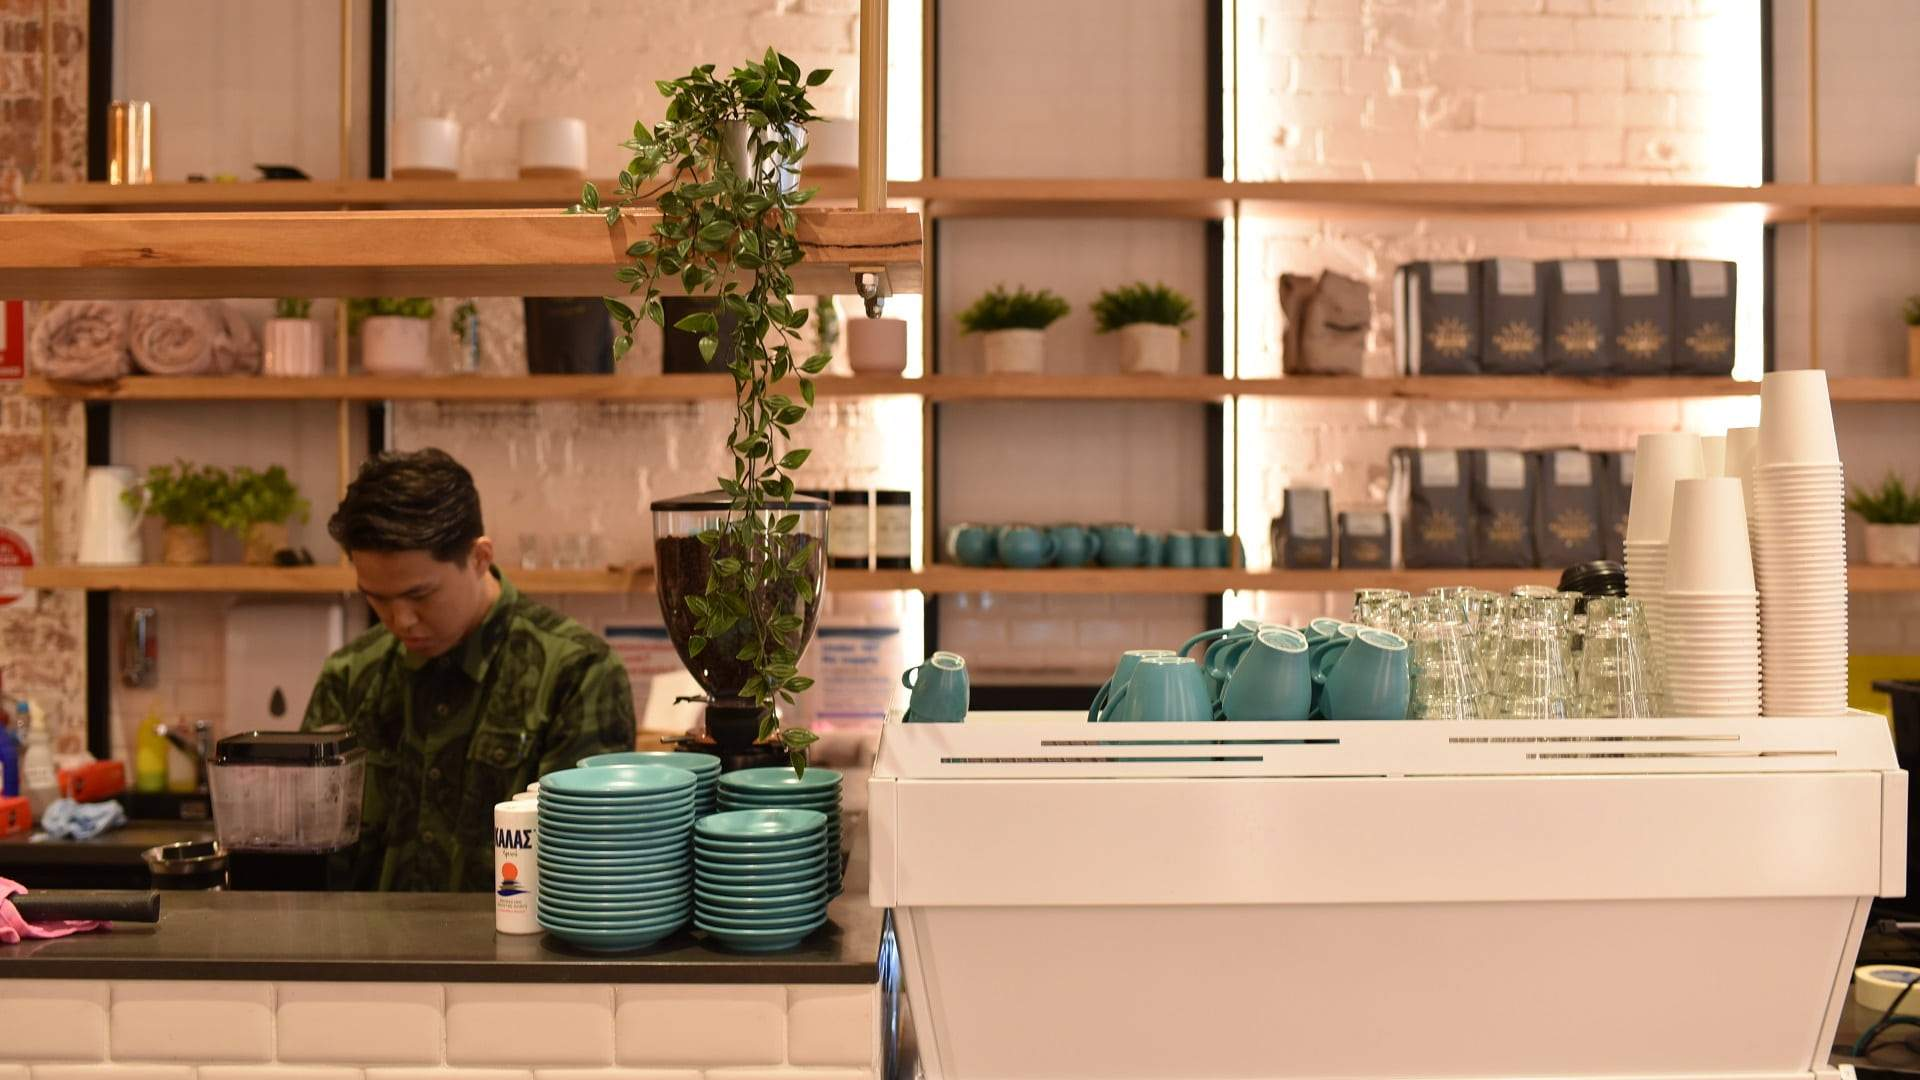 A Plant-Filled Cafe with OTT Brunch Dishes Has Arrived on Glenferrie Road